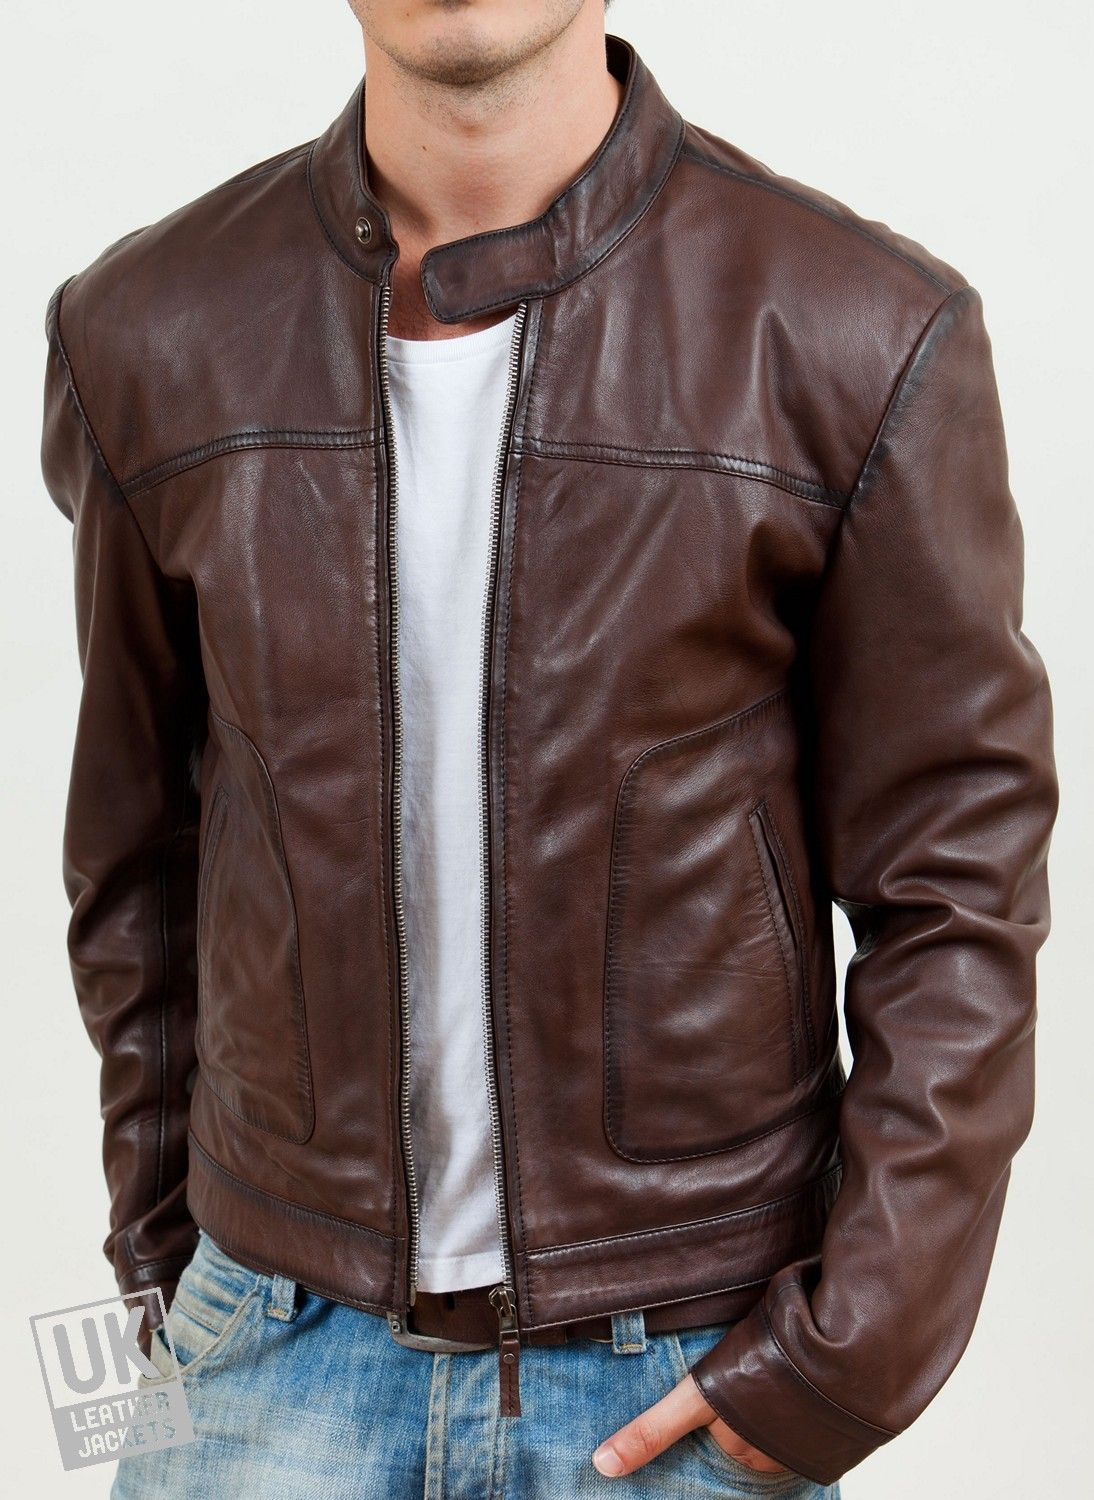 1000  images about Leather jackets on Pinterest | Men's jacket ...